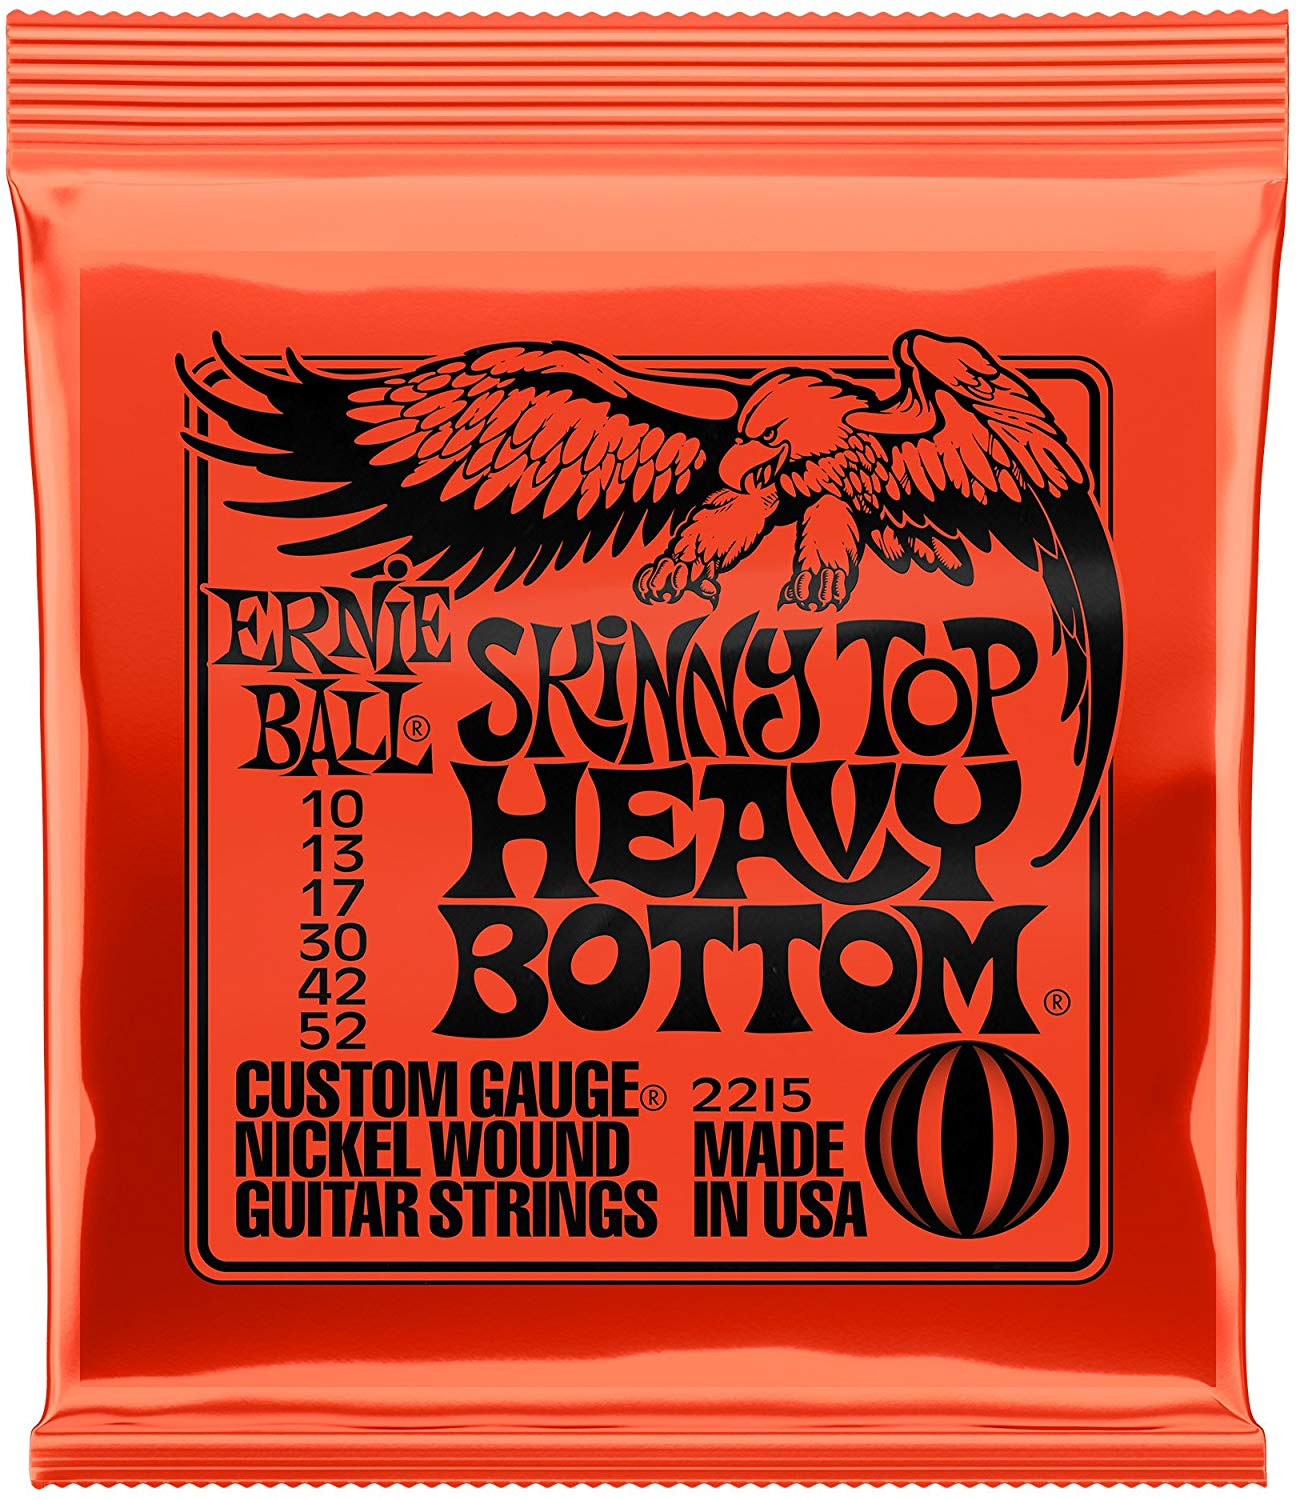 Dây đàn guitar điện 2215 ,Ernie Ball Skinny Top Heavy Bottom Electric Guitar Strings 2215